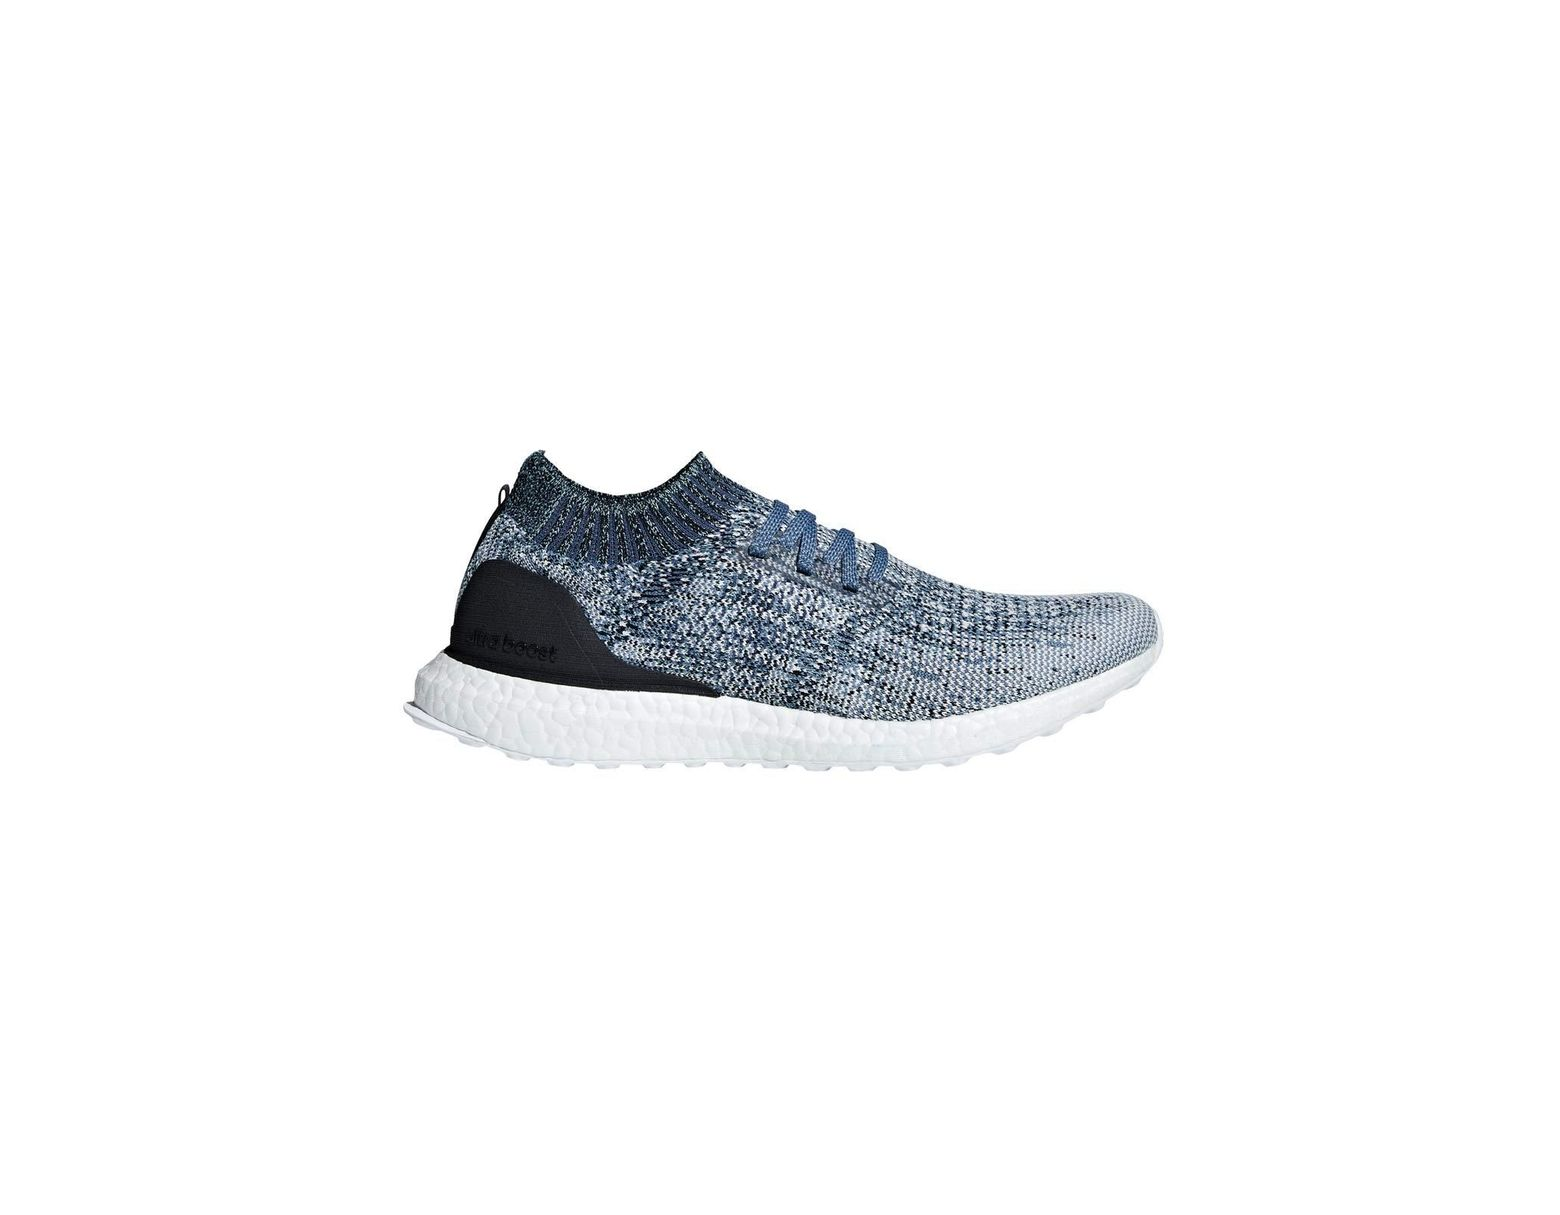 c4df673115ce8 adidas Ultraboost Uncaged Parley in Blue for Men - Lyst